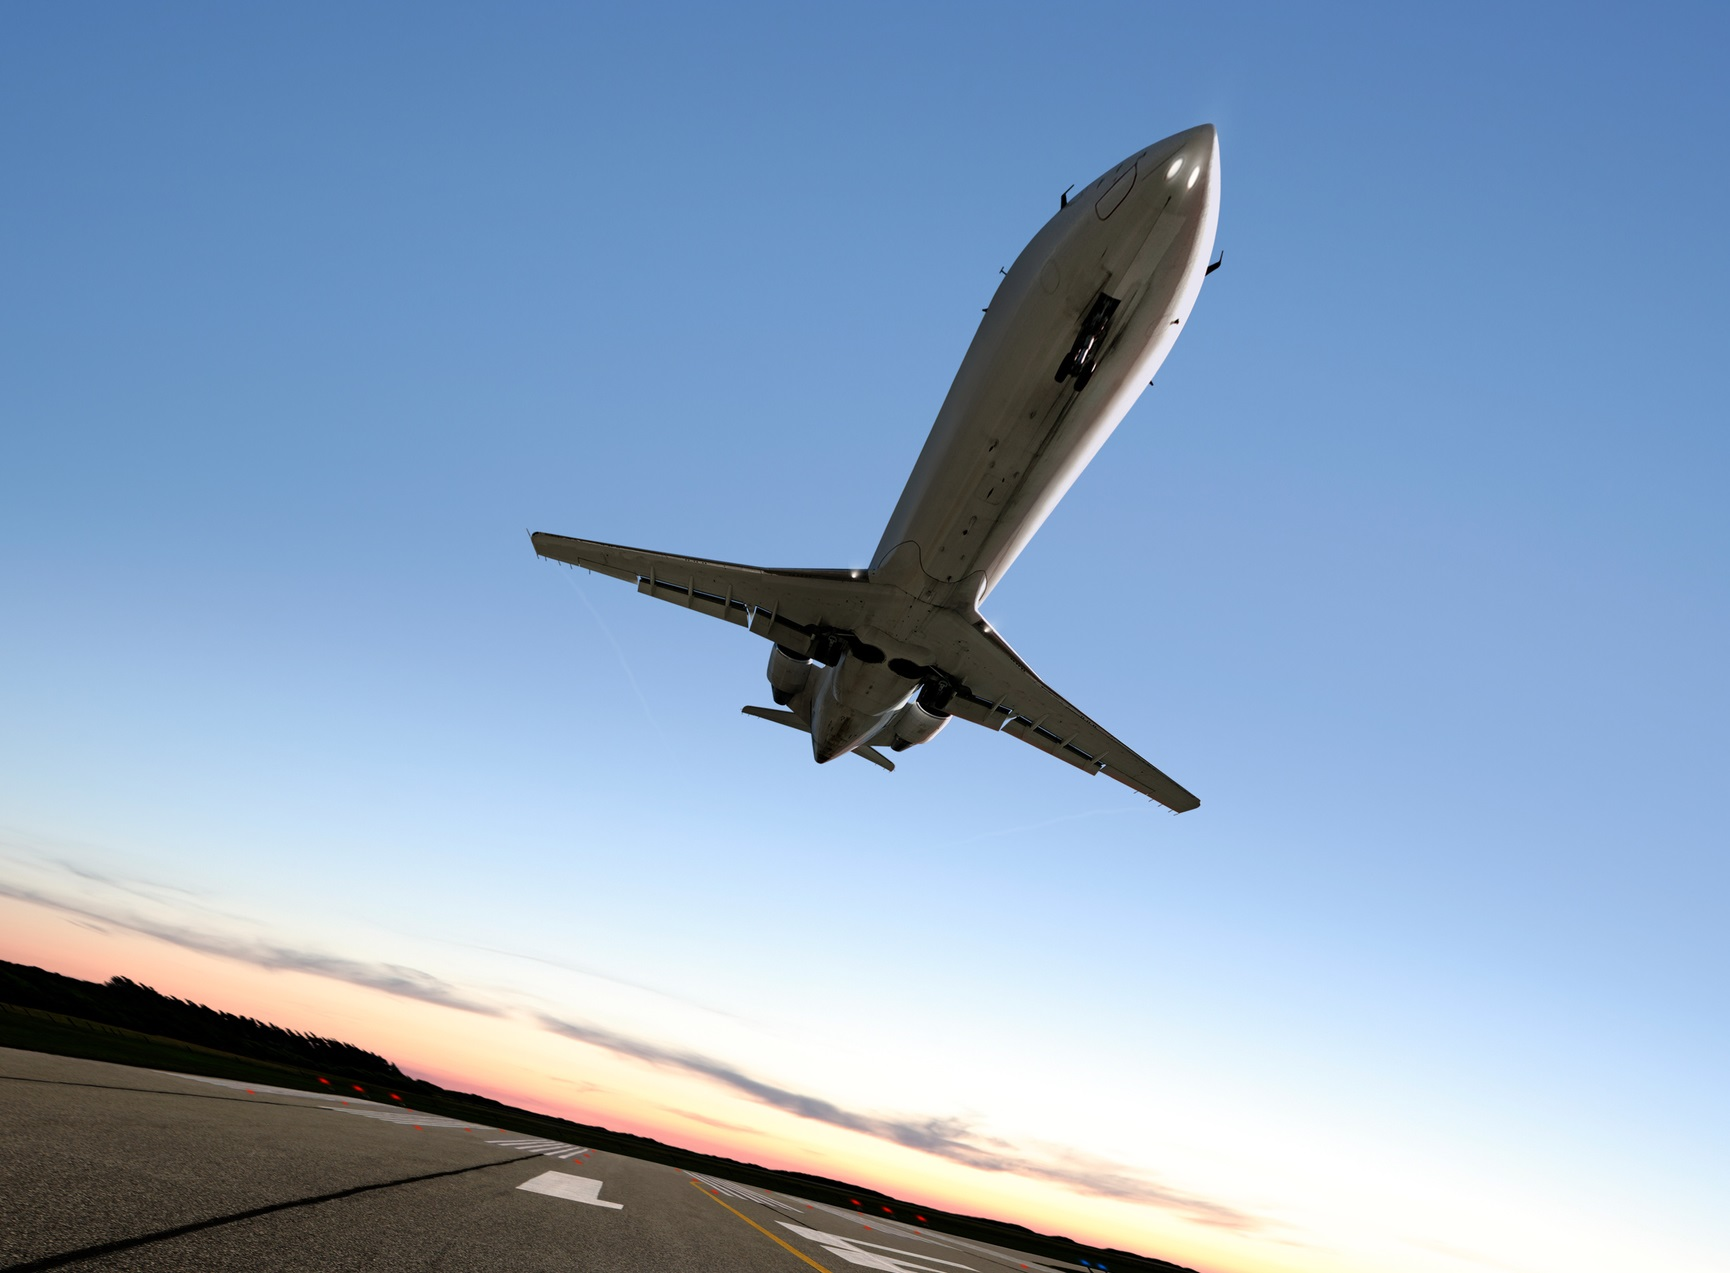 A private jet on take off flies overhead